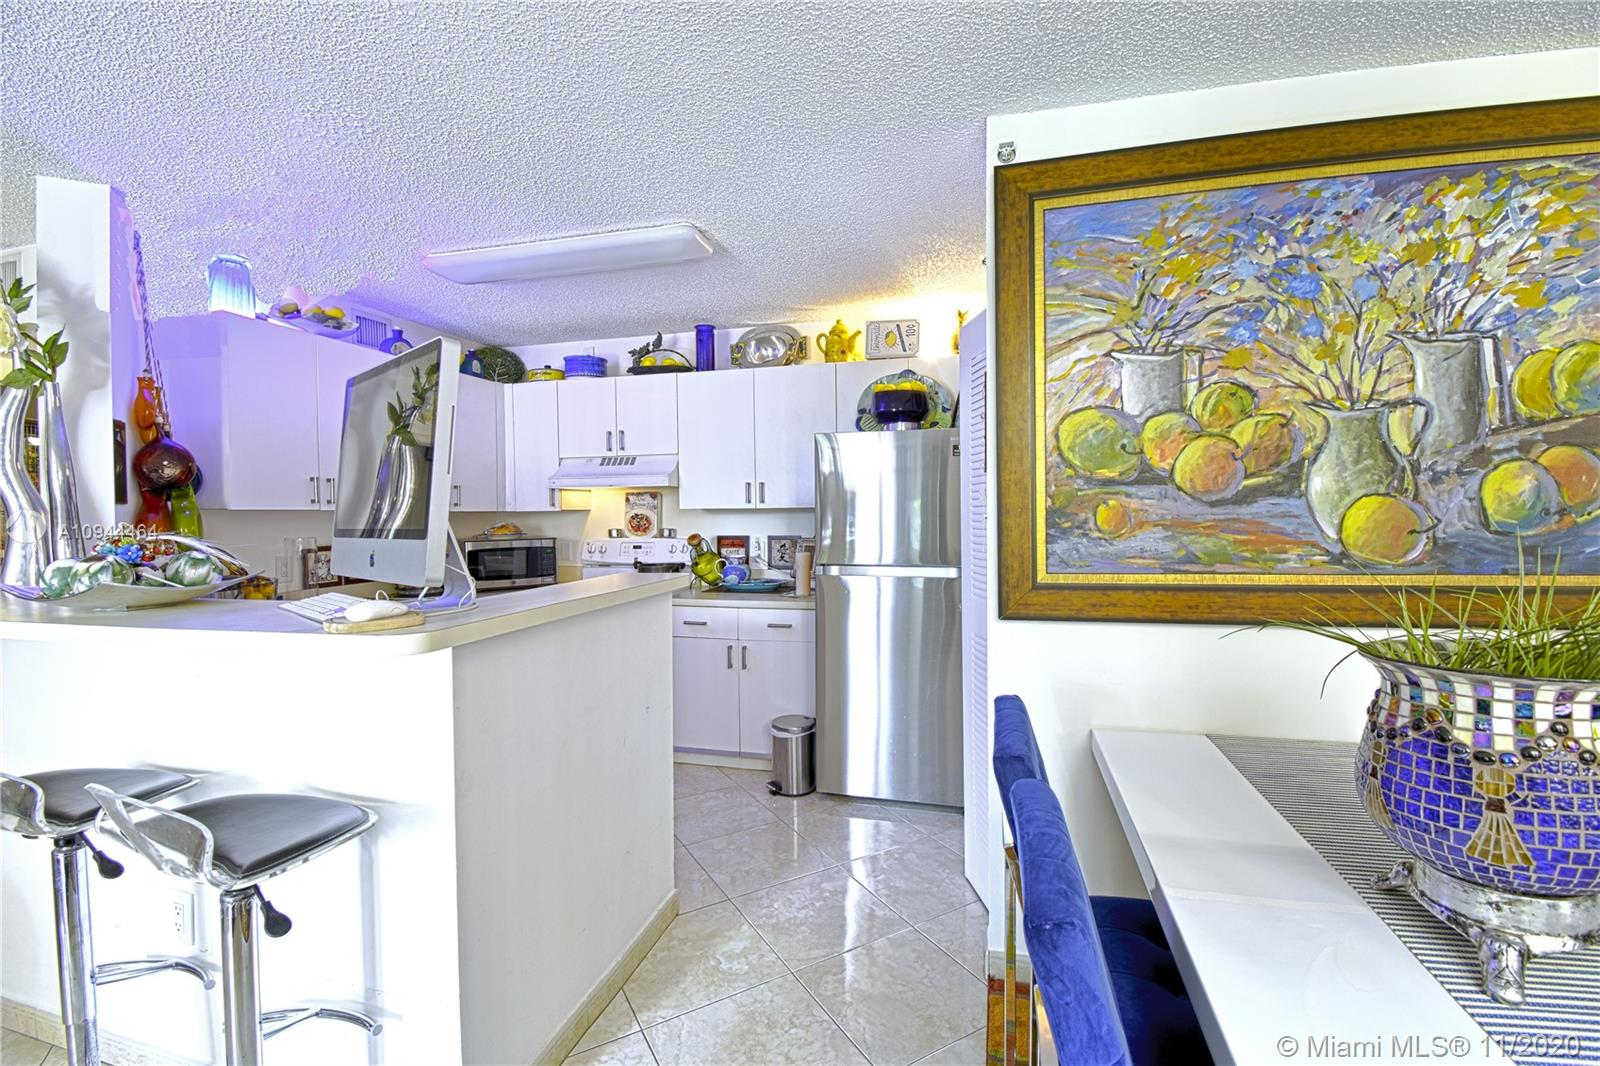 Yacht Club 6 at Aventura #4304 - 19801 E Country Club Dr #4304, Aventura, FL 33180